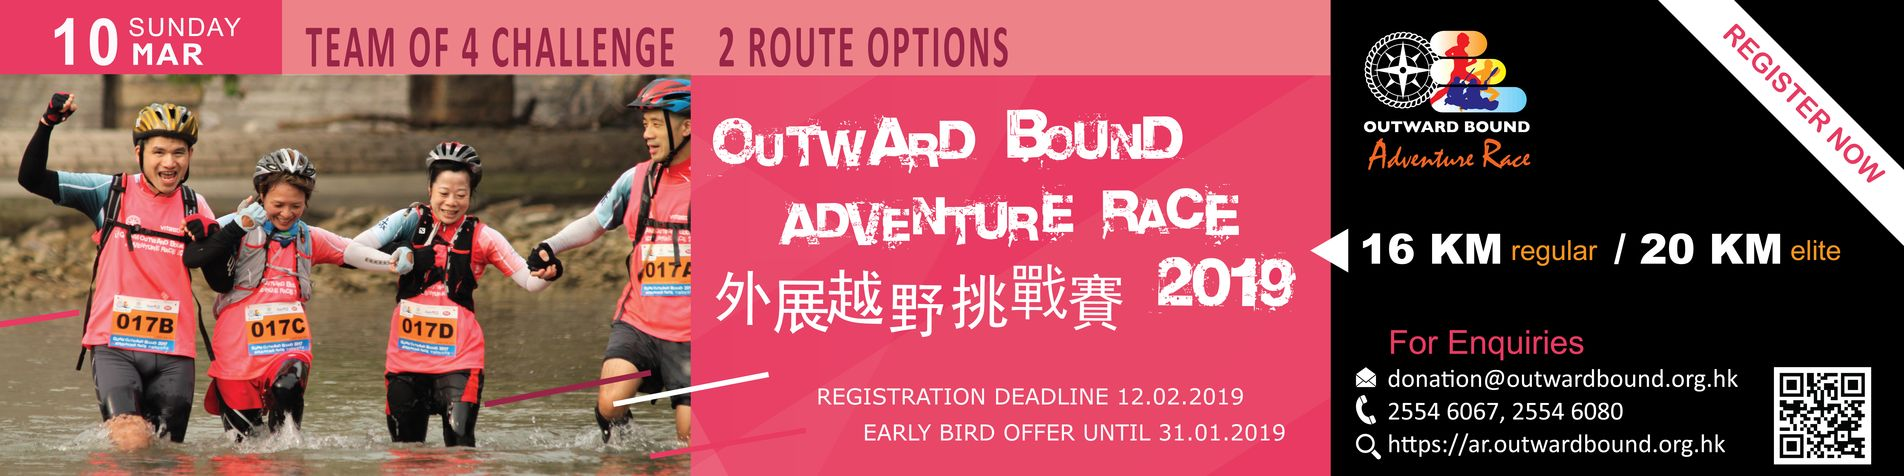 Outward Bound Adventure Race 2019